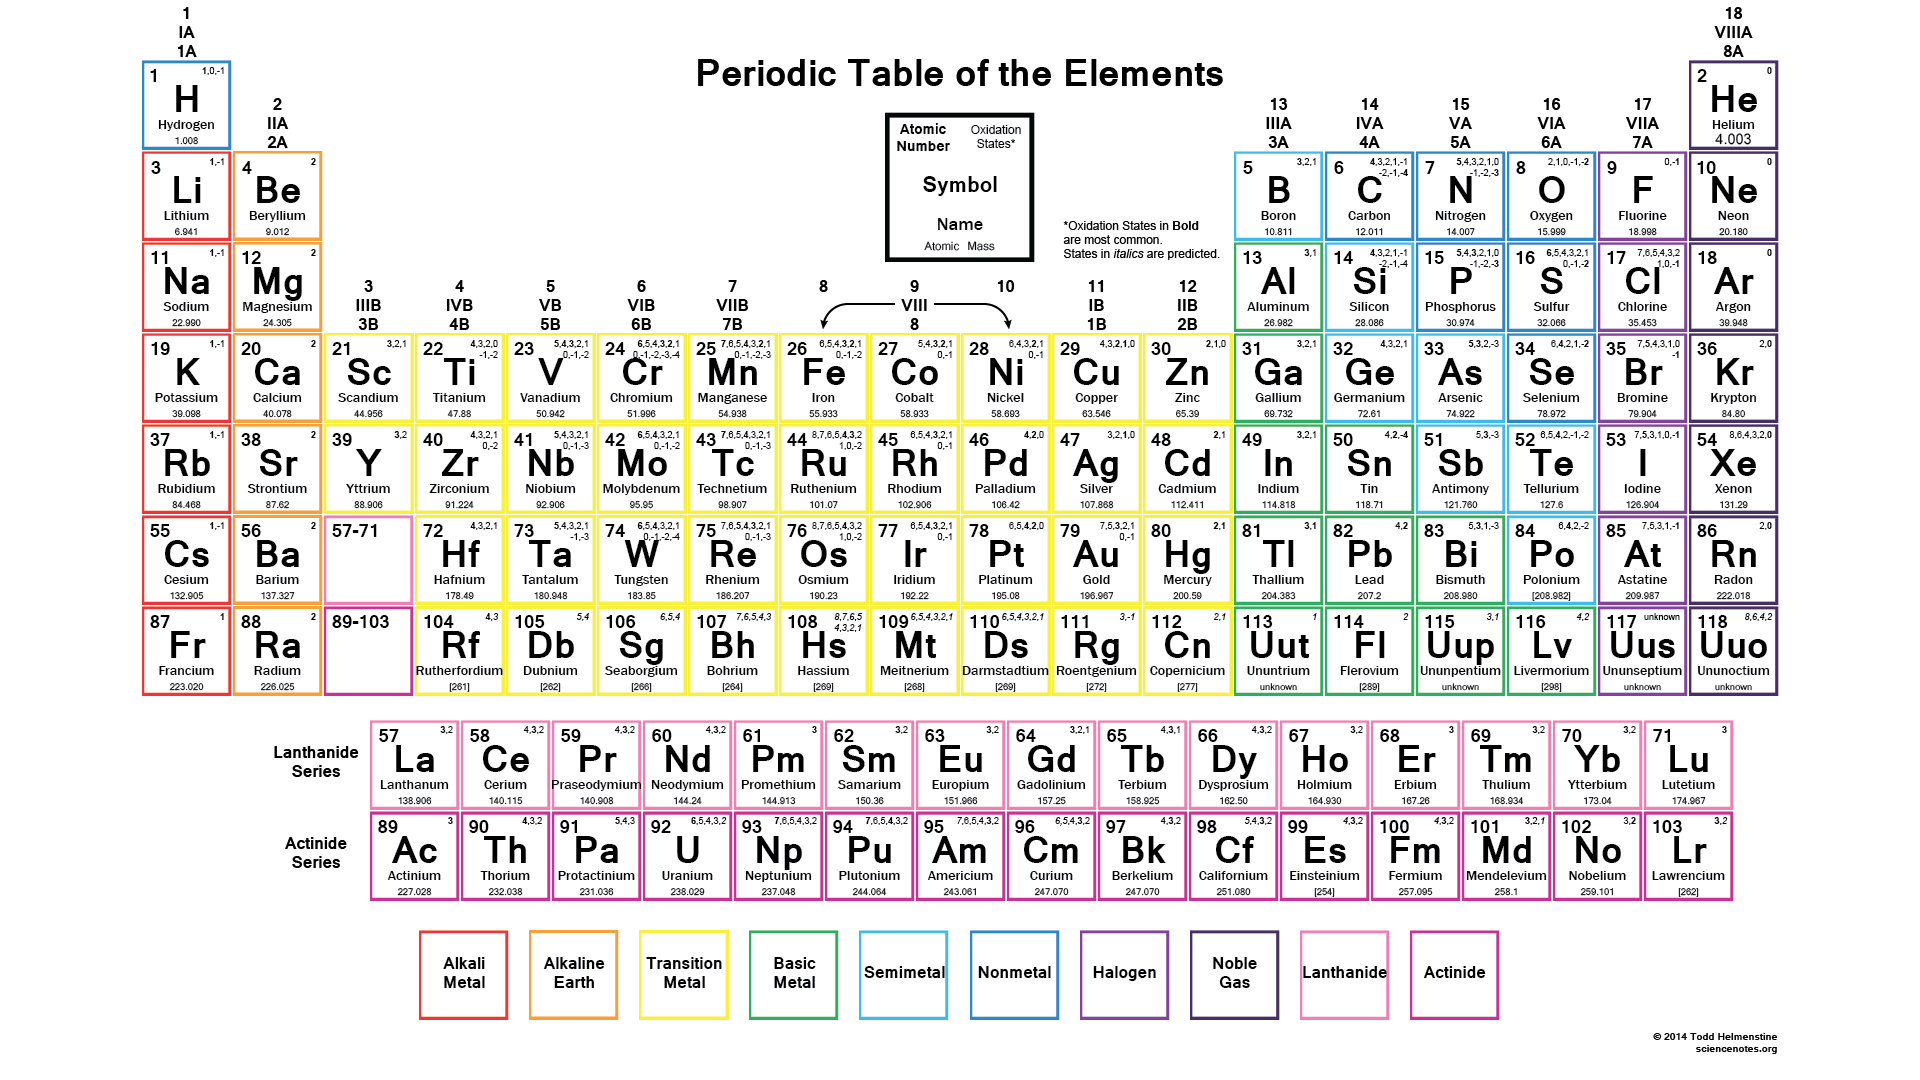 Downloadable periodic table oxidation states click for full size this table is available for download as a pdf urtaz Gallery